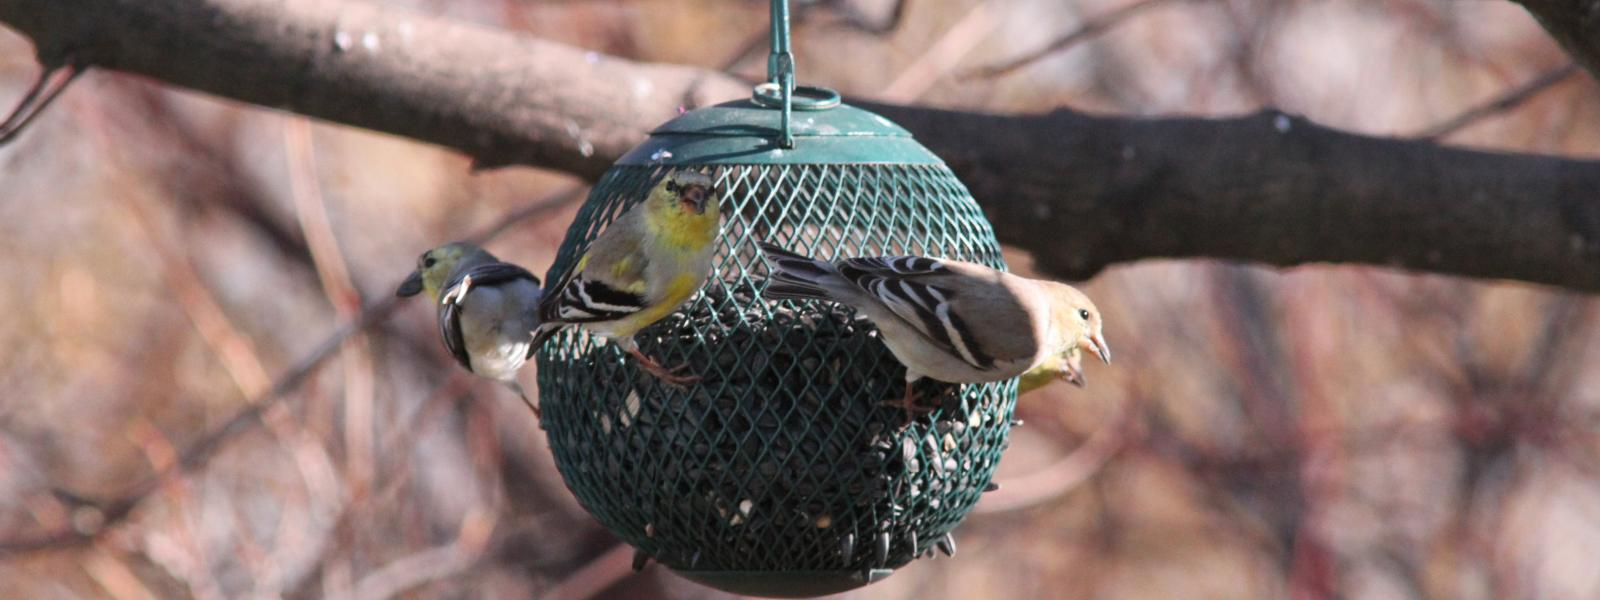 Finches on a feeder